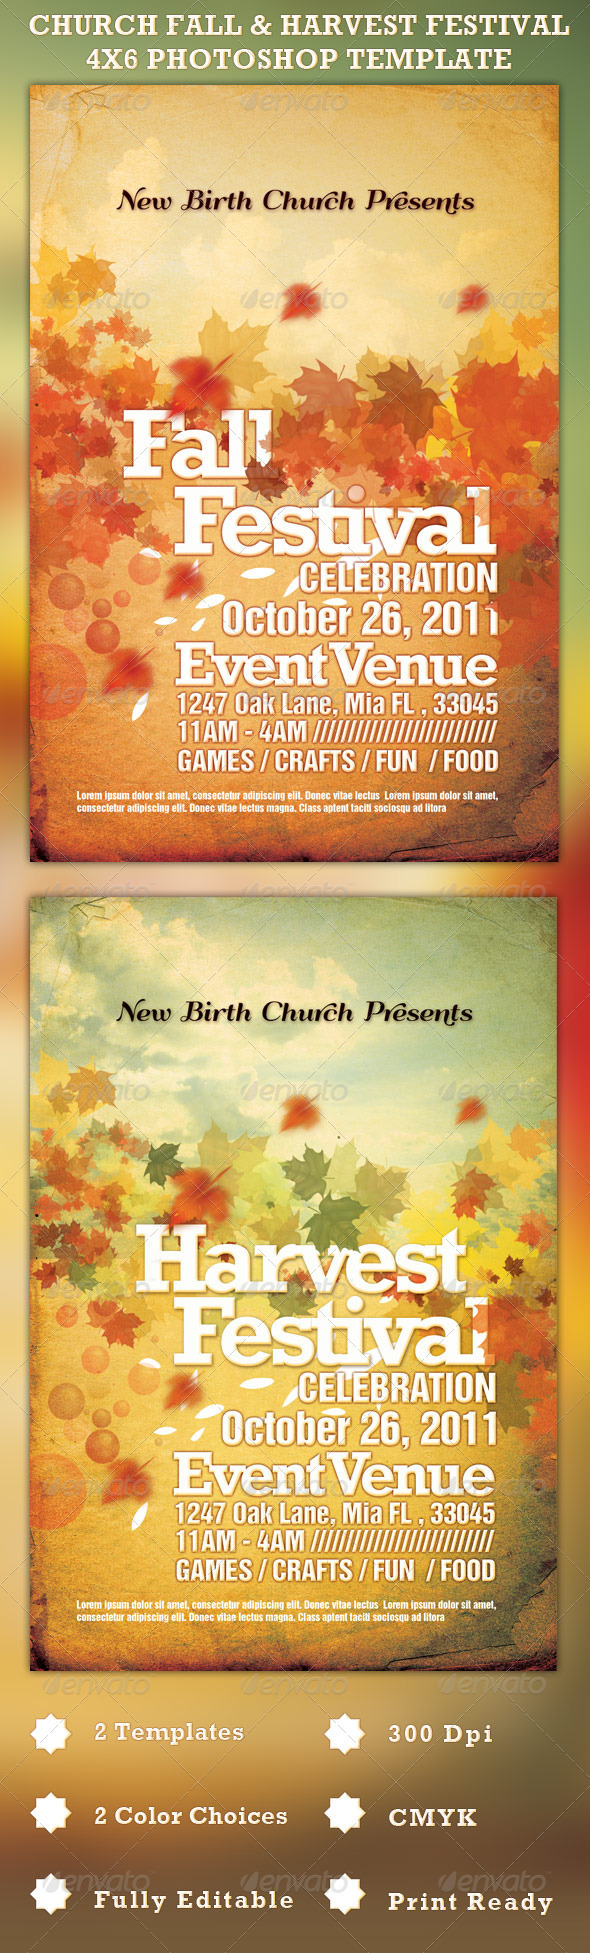 GraphicRiver Church Fall and Harvest Festival Template 688860